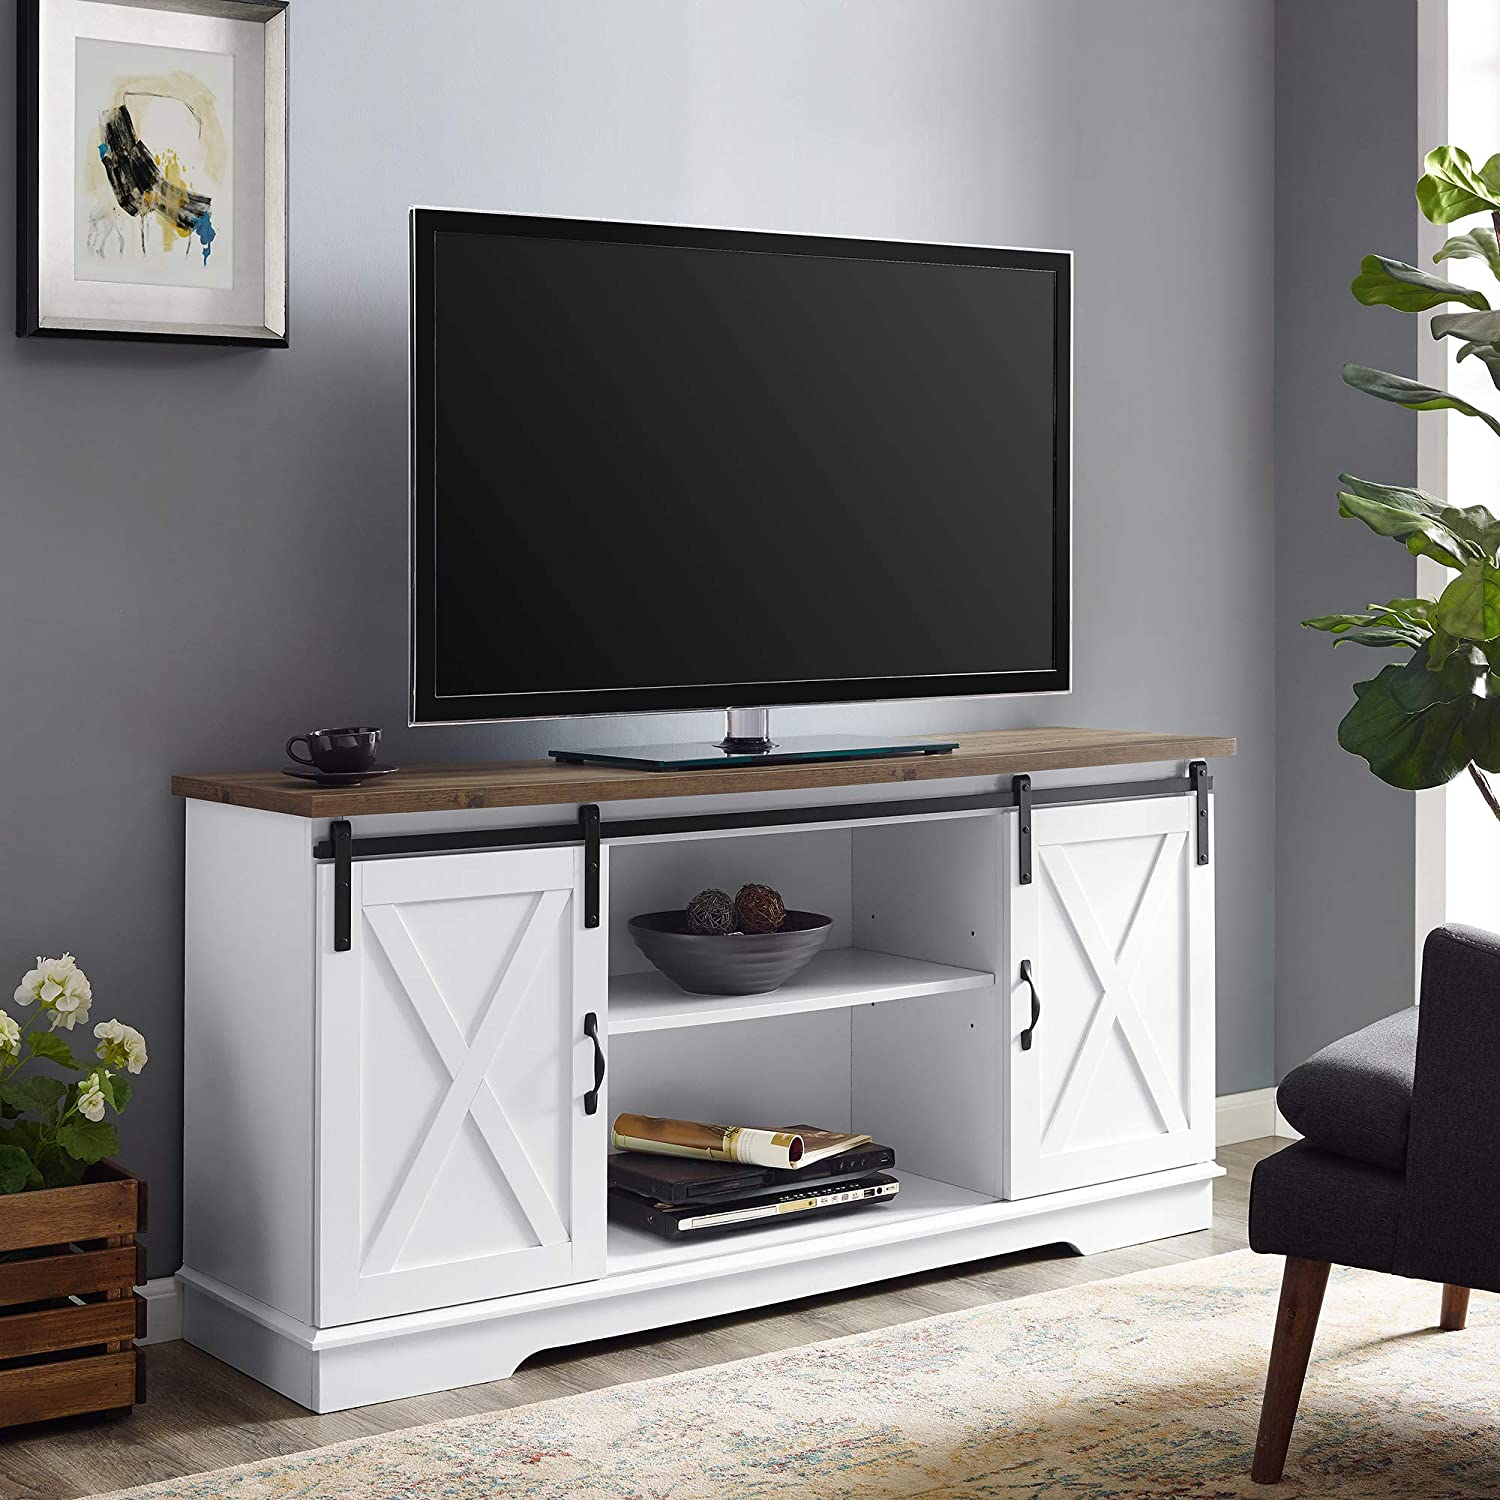 5. Walker Edison Modern TV Stand – Best For Money